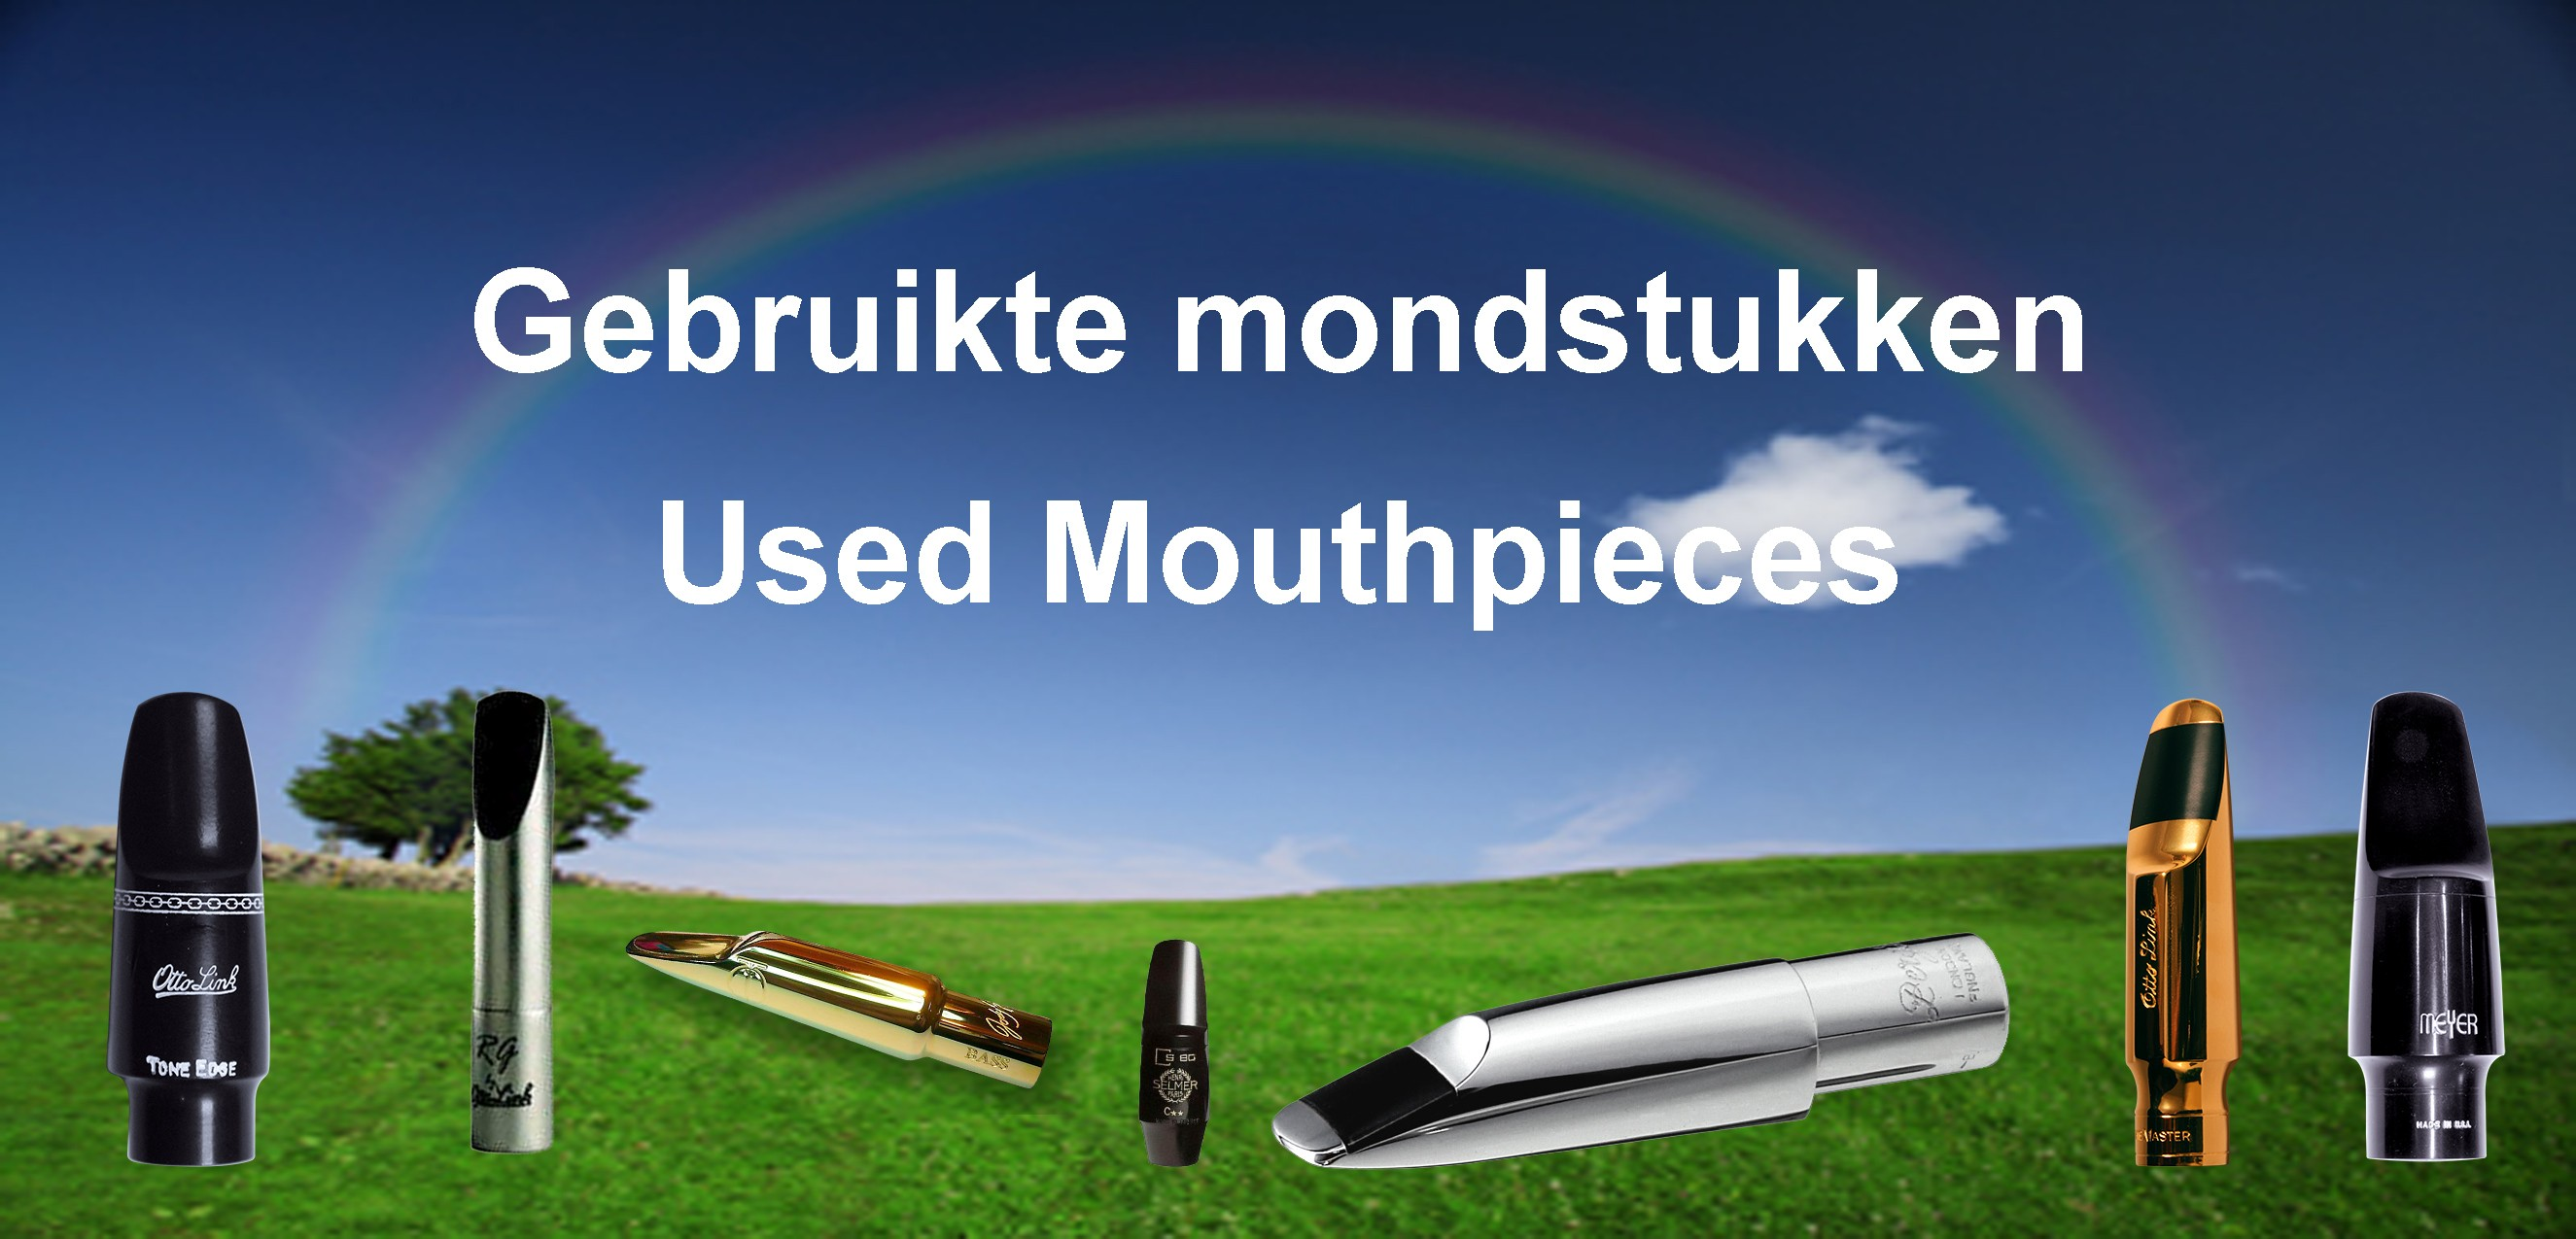 Used Mouthpieces